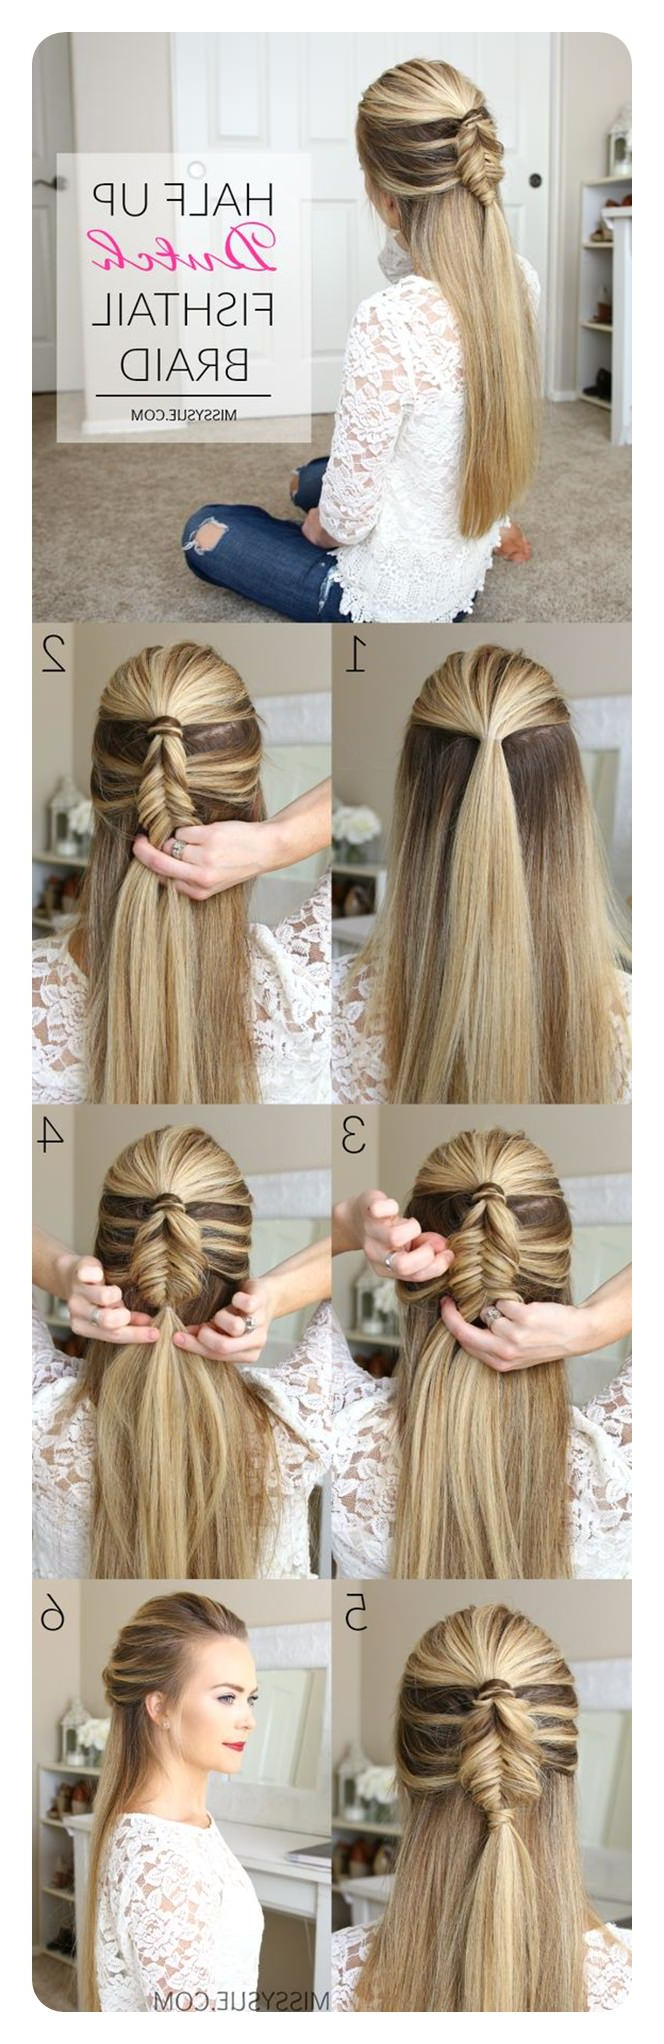 Current Messy Fishtail Hairstyles For Oblong Faces Regarding Fishtail Braid A 104 Of Hot And Happening Hairstyles For This Year (View 8 of 20)